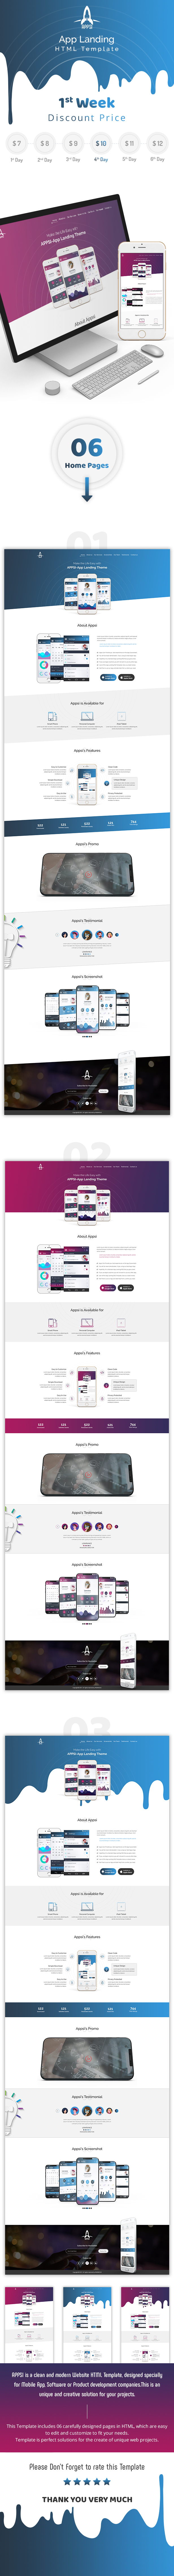 Demo_page_HTML_4th